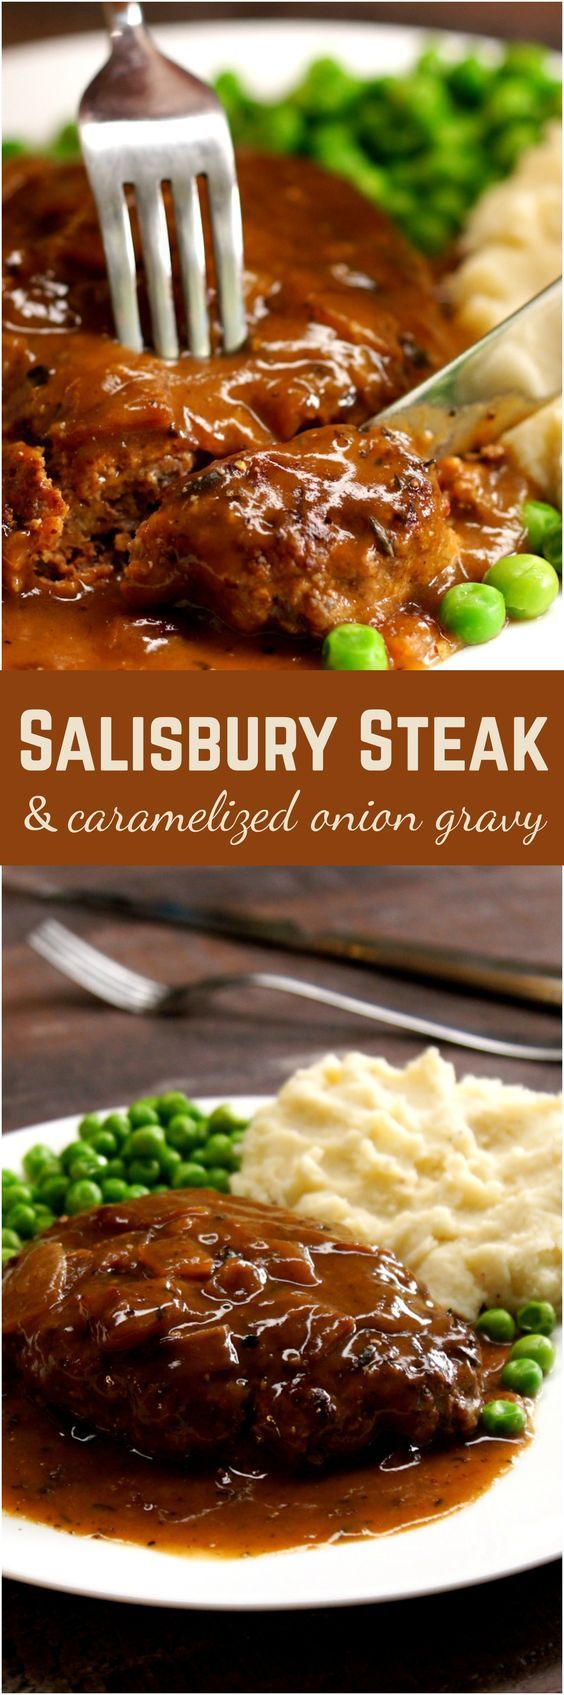 Here's how to make an old-school Salisbury steak, just like you remember it (unless you remember it from TV dinners or school cafeteria lunches — in which case this recipe with caramelized onion gravy is way better).